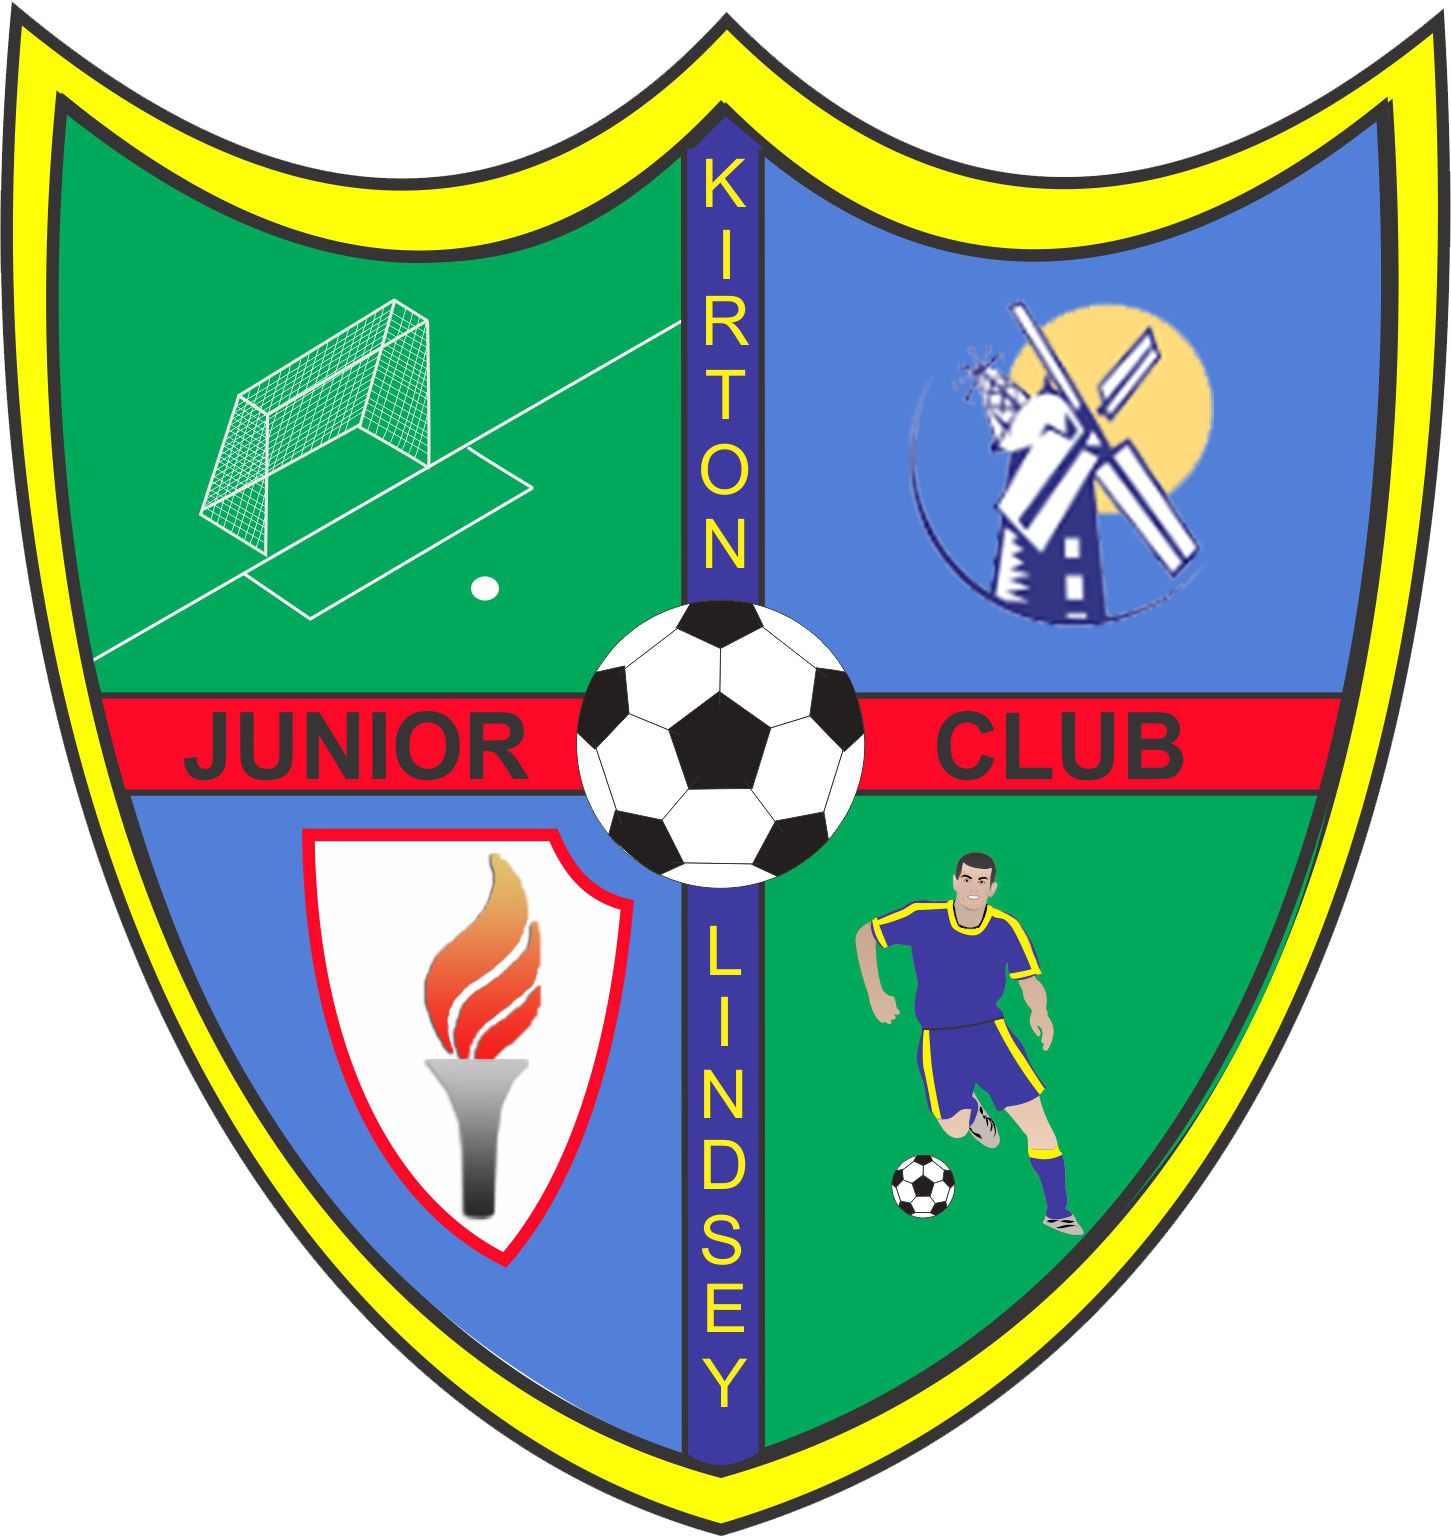 Kirton Lindsey Junior Football Club